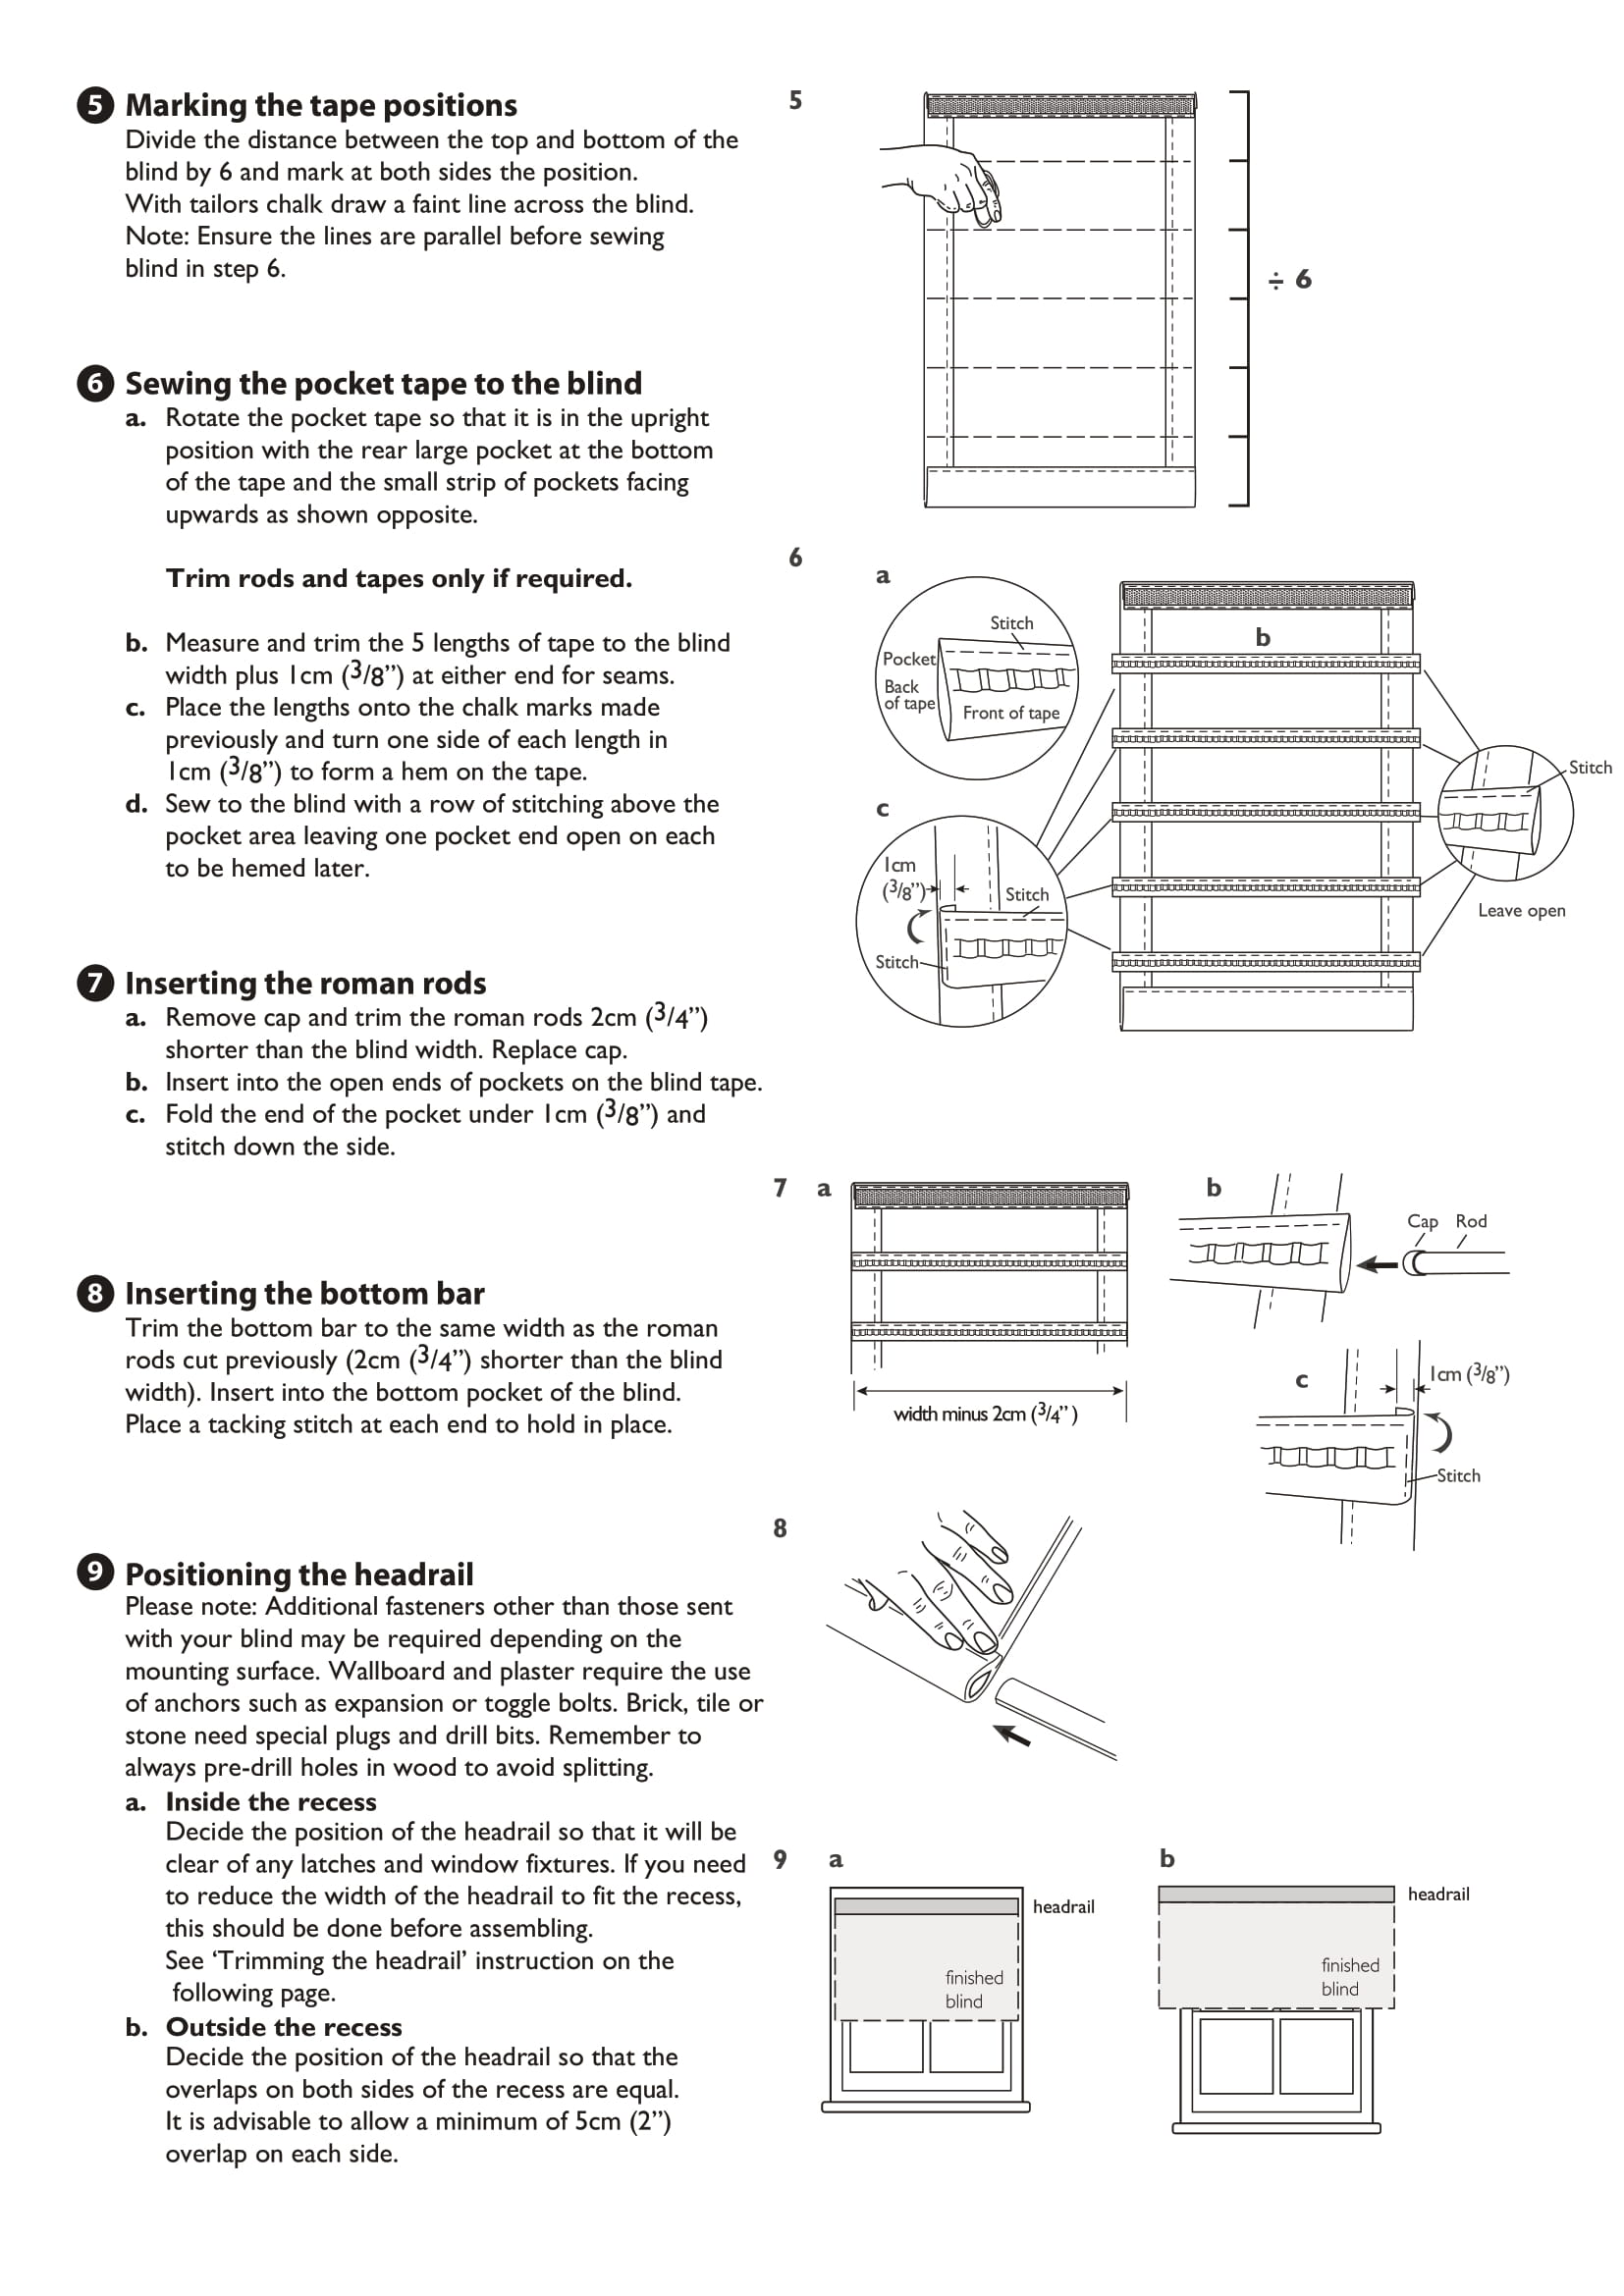 Deluxe Pvc Roman Blind Kit Fitting Instructions Two